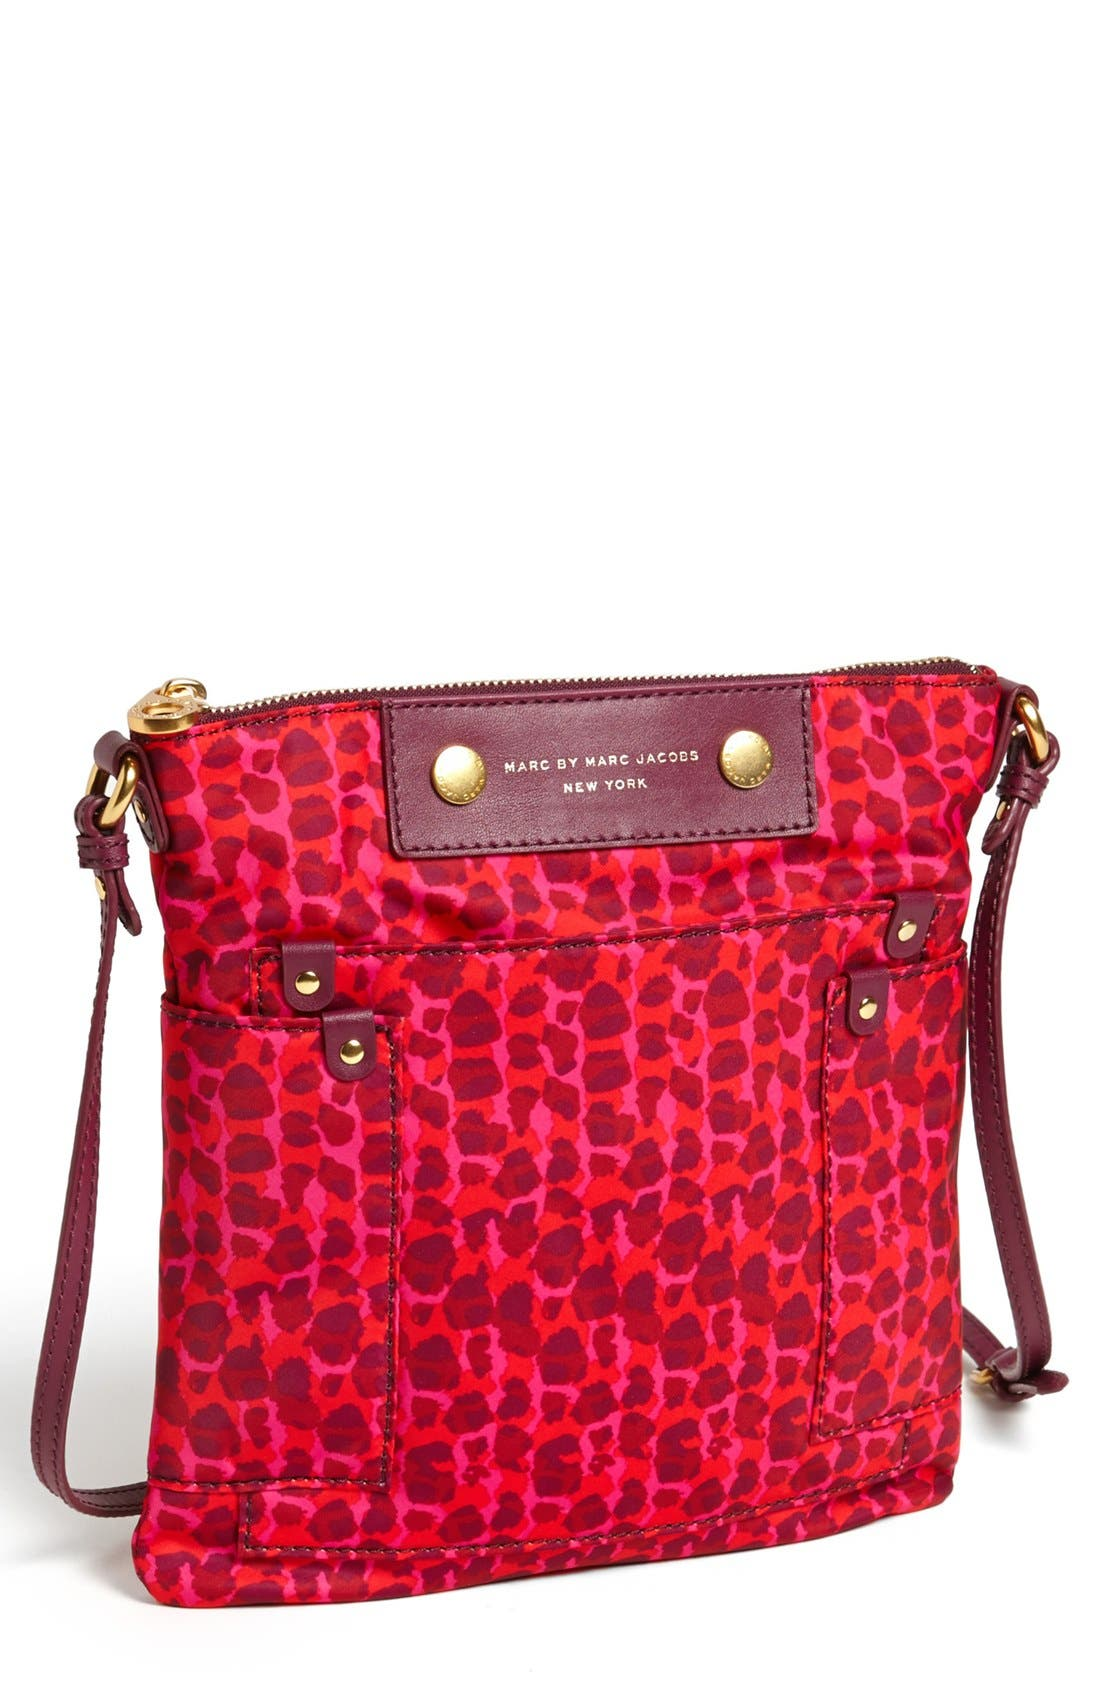 Main Image - MARC BY MARC JACOBS 'Preppy - Isa' Crossbody Bag, Small